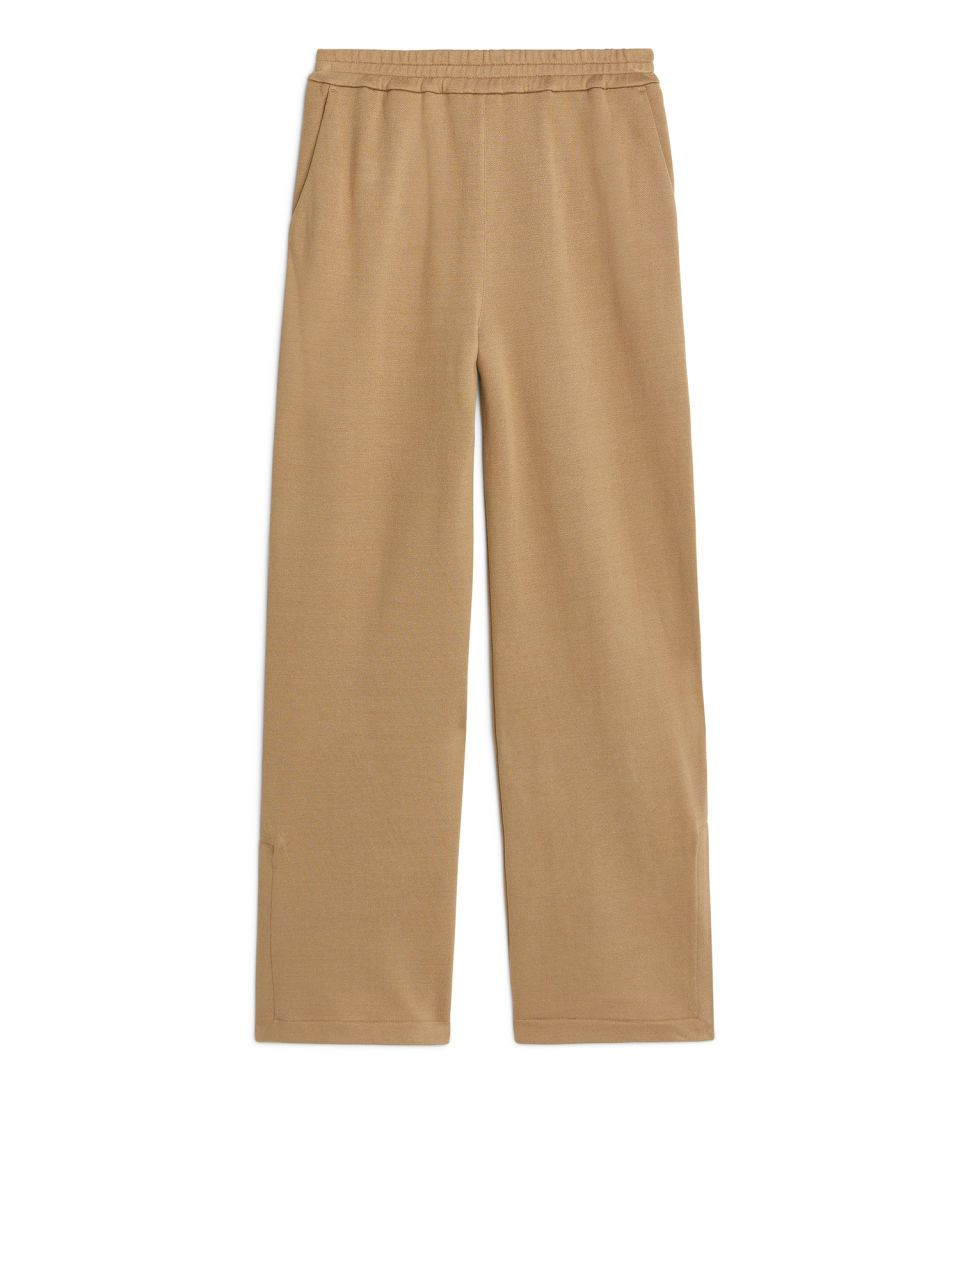 sale uk first look new release Cotton Silk Sweatpants - Beige - Trousers | Soft | Cotton ...